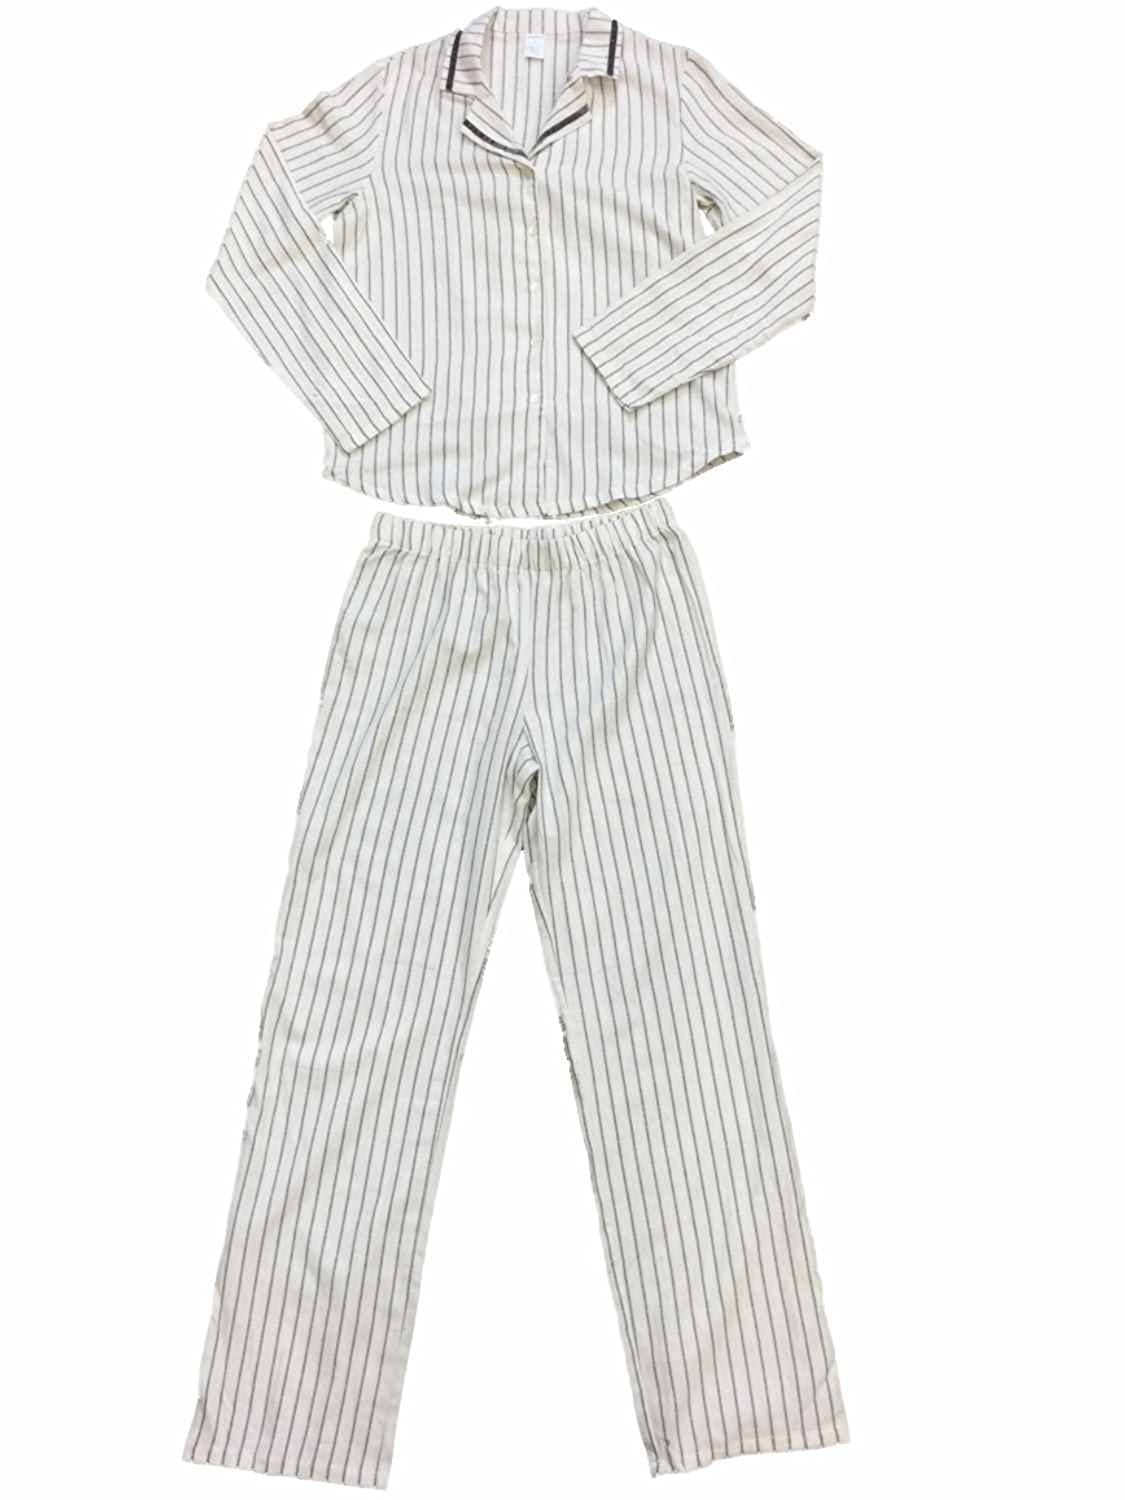 2c56f31688 Womens White Gray   Silver Vertical Stripes Flannel Pajama Sleep Set at  Amazon Women s Clothing store